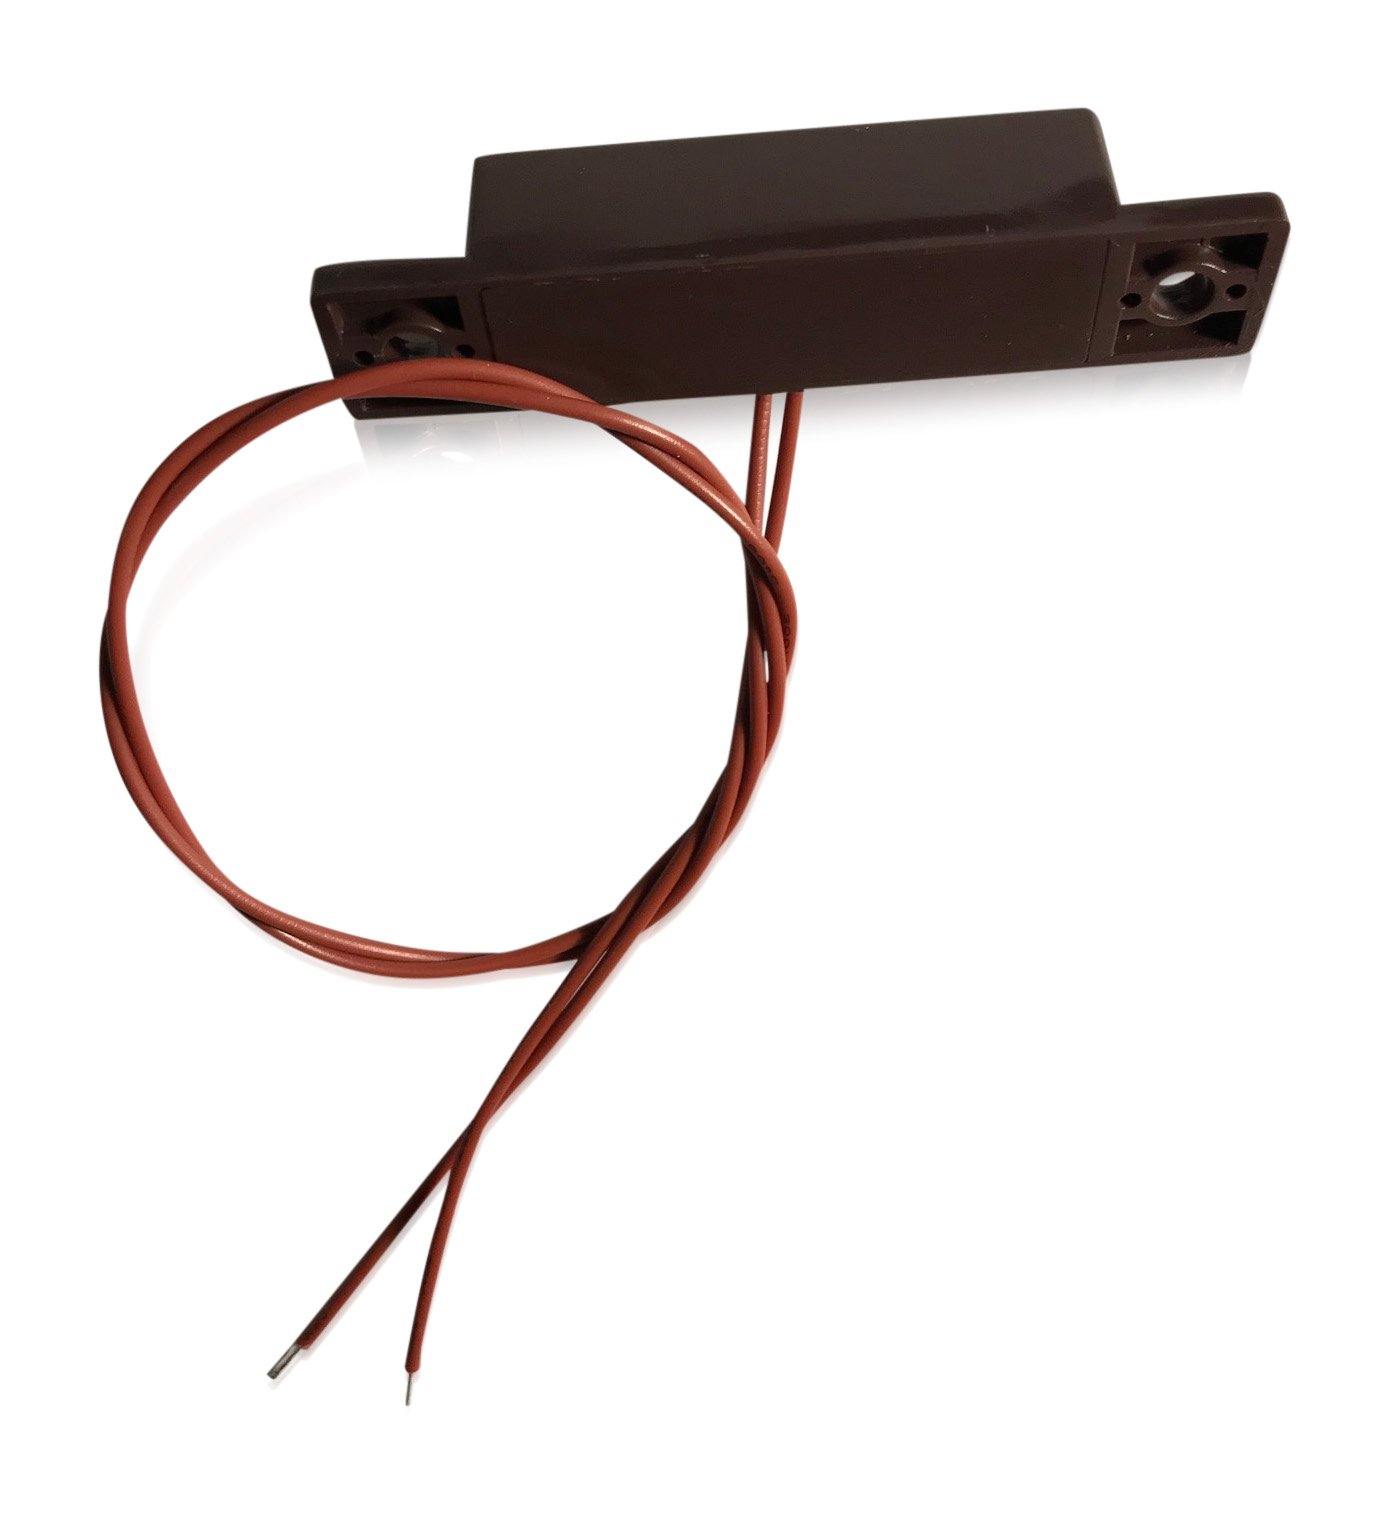 "3 pcs Brown Wired Door Contacts Surface Mount NC Security Alarm Door Window Sensors.These ¾"" Door Contact Position switches (DCS) Work with All Access Control and Burglar Alarm Systems by INTELLid (Image #3)"